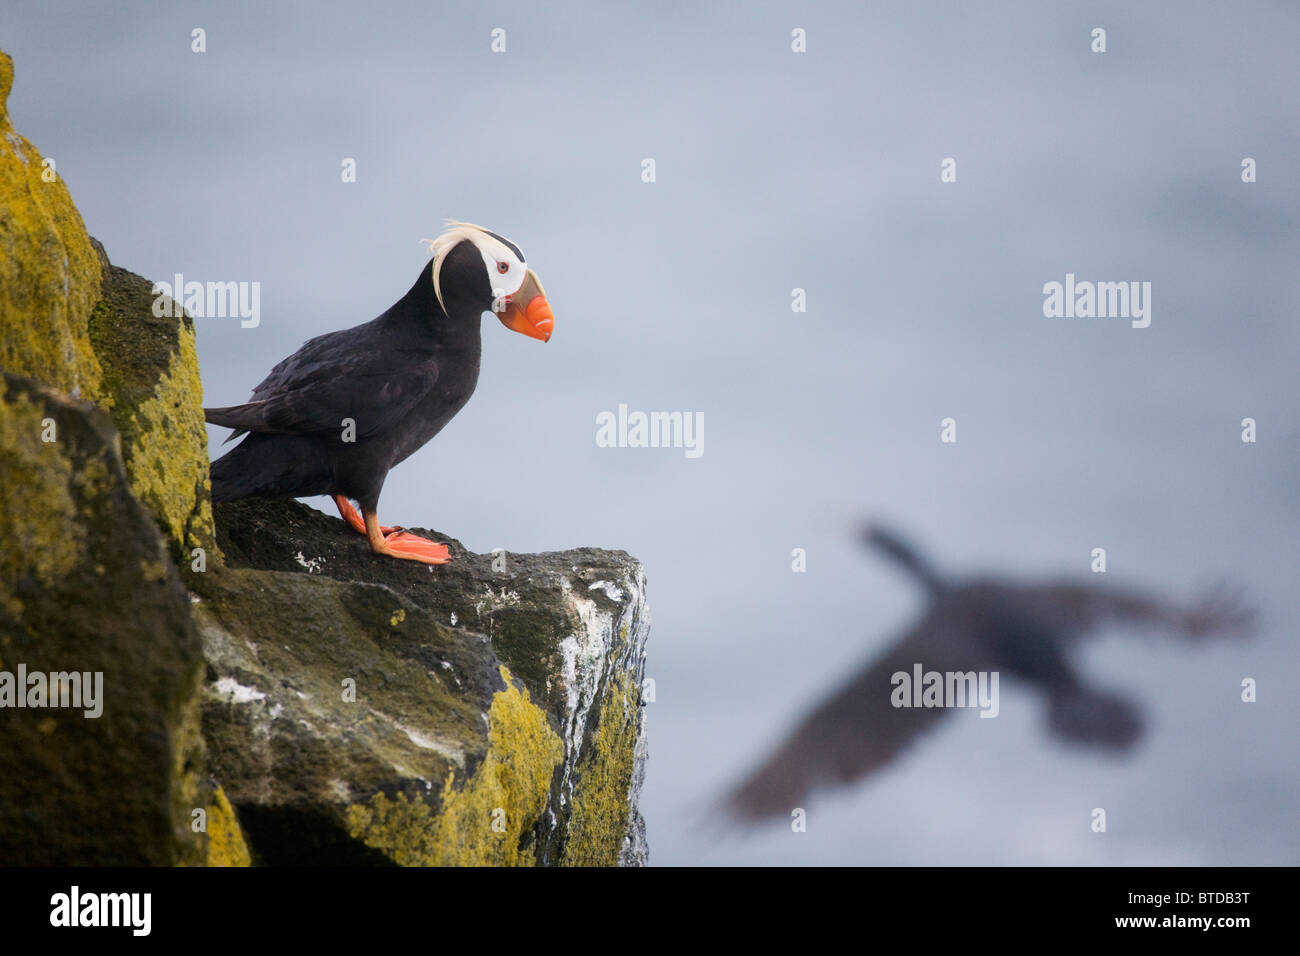 Tufted Puffin on cliff ledge with Red-faced Cormorant flying by, Saint Paul Island, Pribilof Islands, Bering Sea, - Stock Image